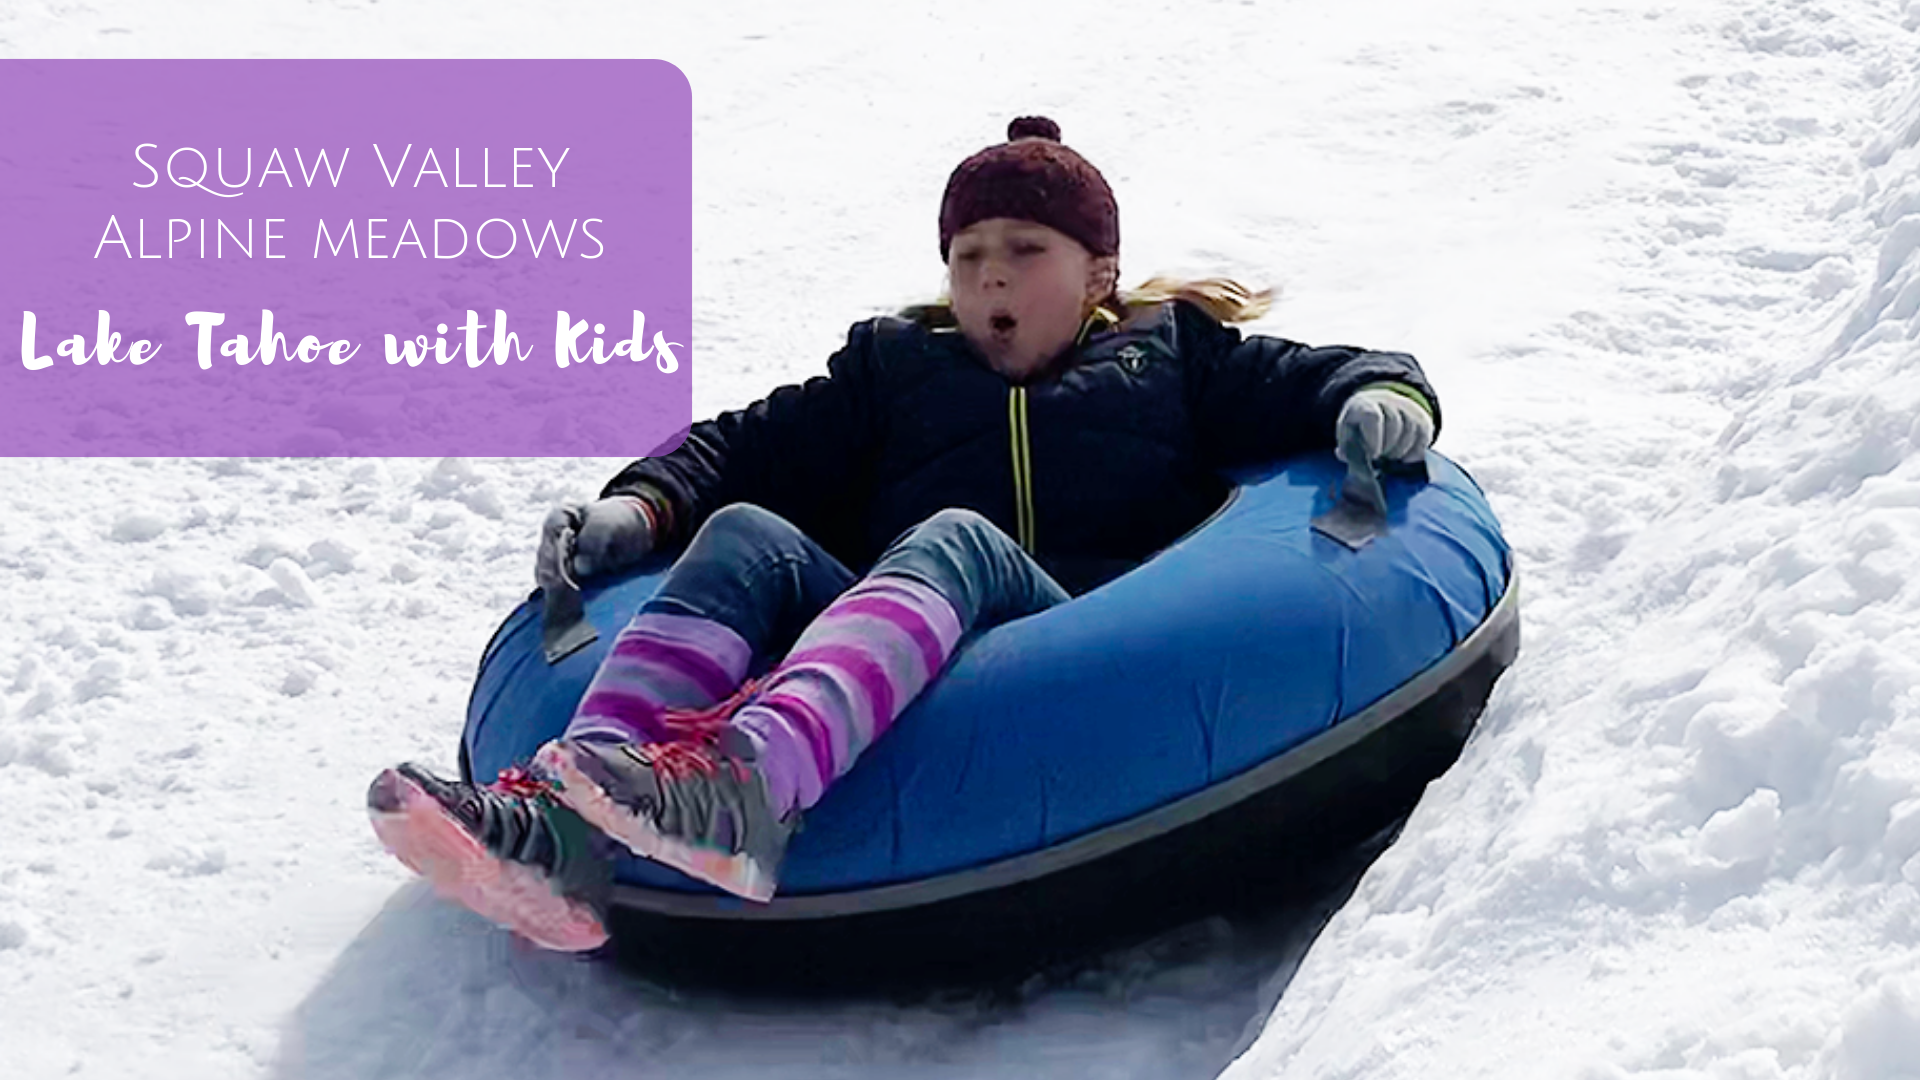 Squaw Valley | Alpine Meadows - Exploring Lake Tahoe with Kids